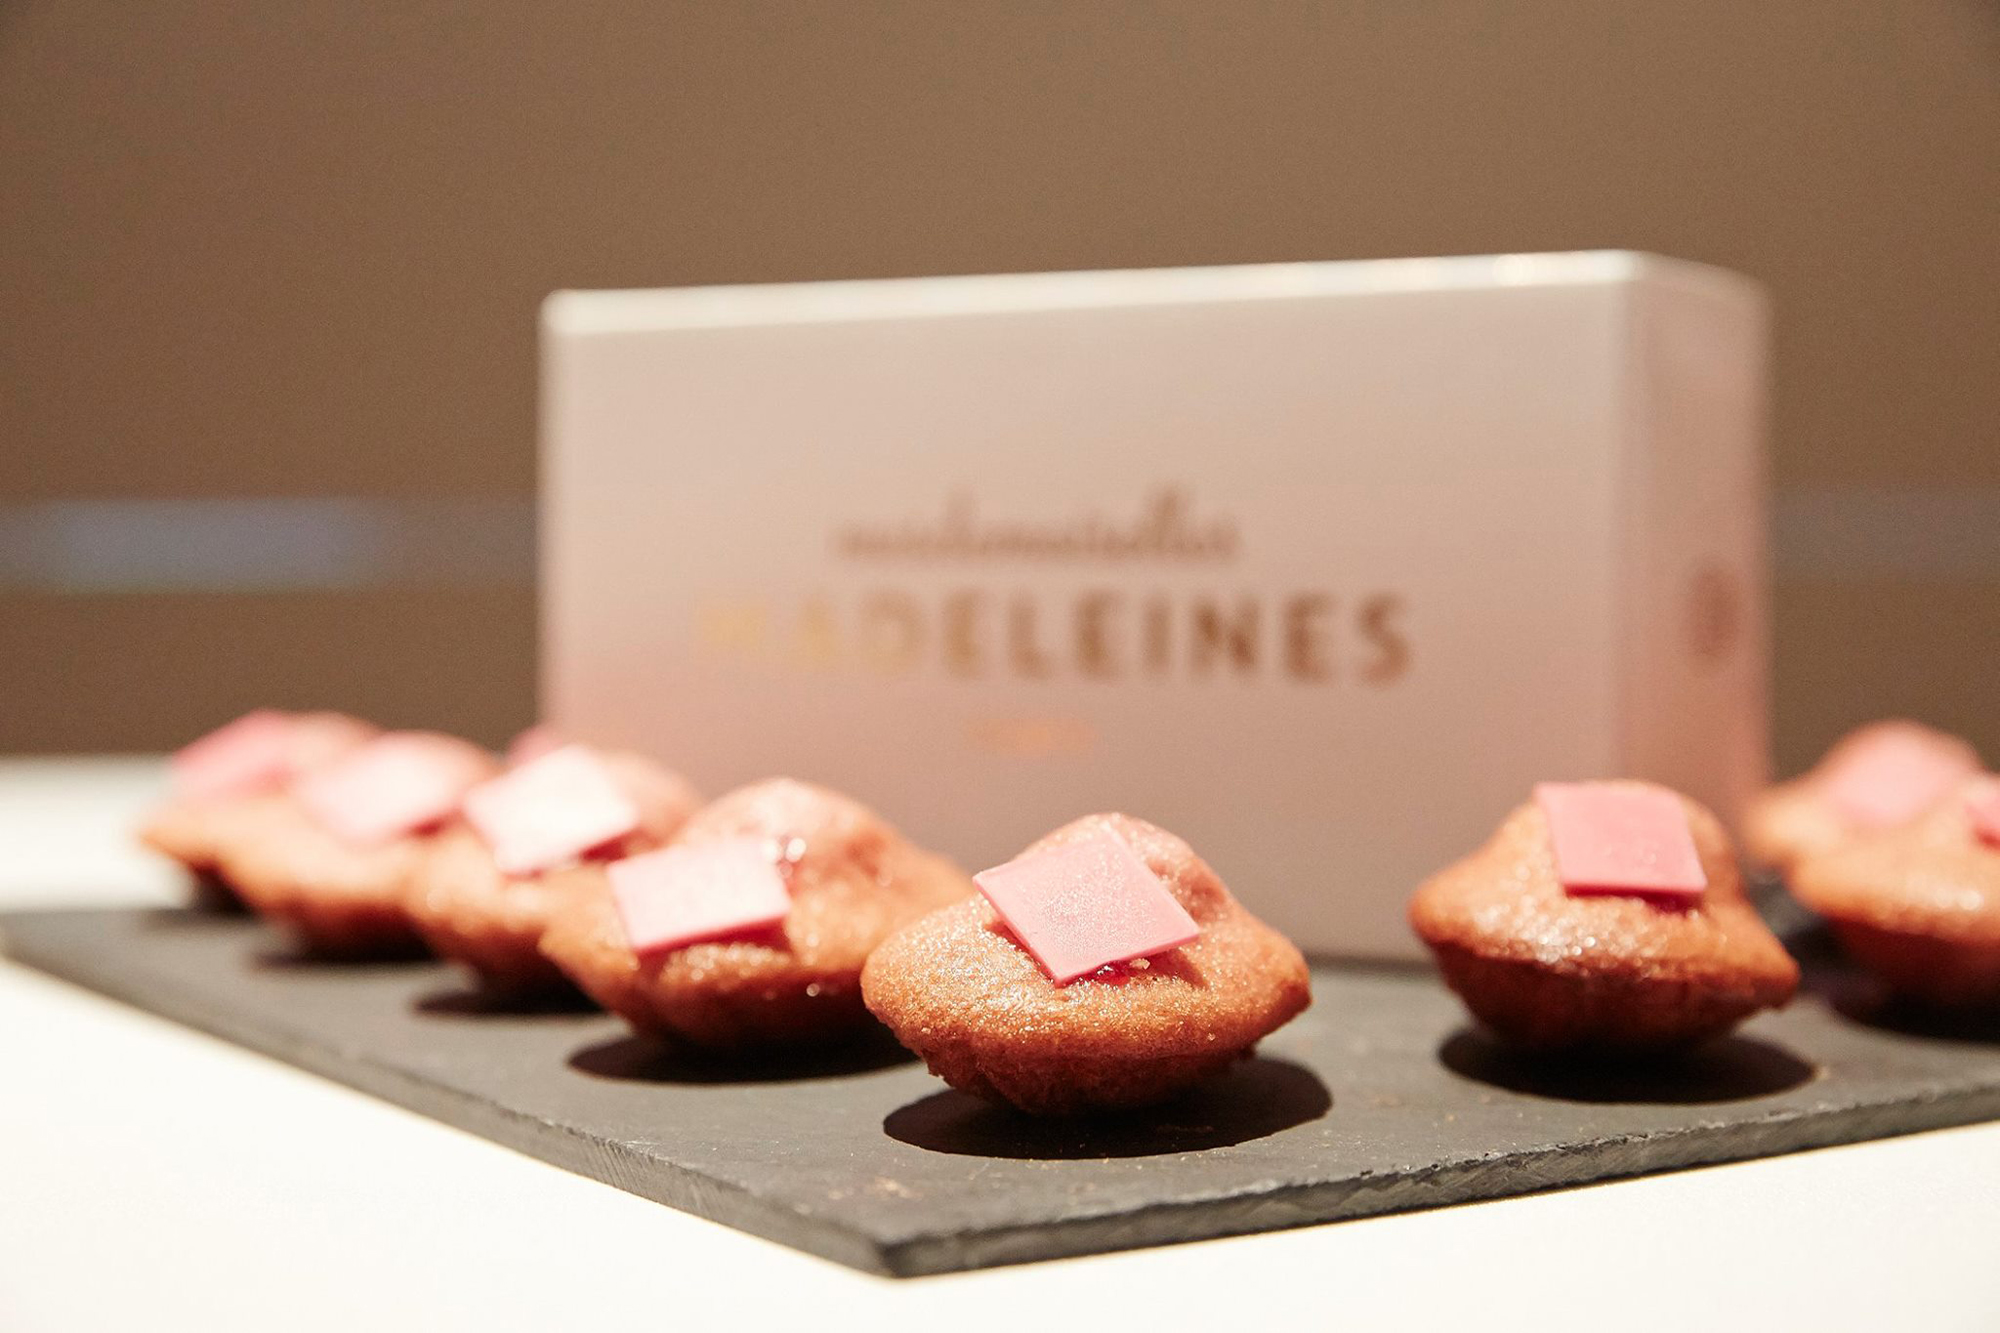 Mesdemoiselles Madeleines, South Pigalle, Paris